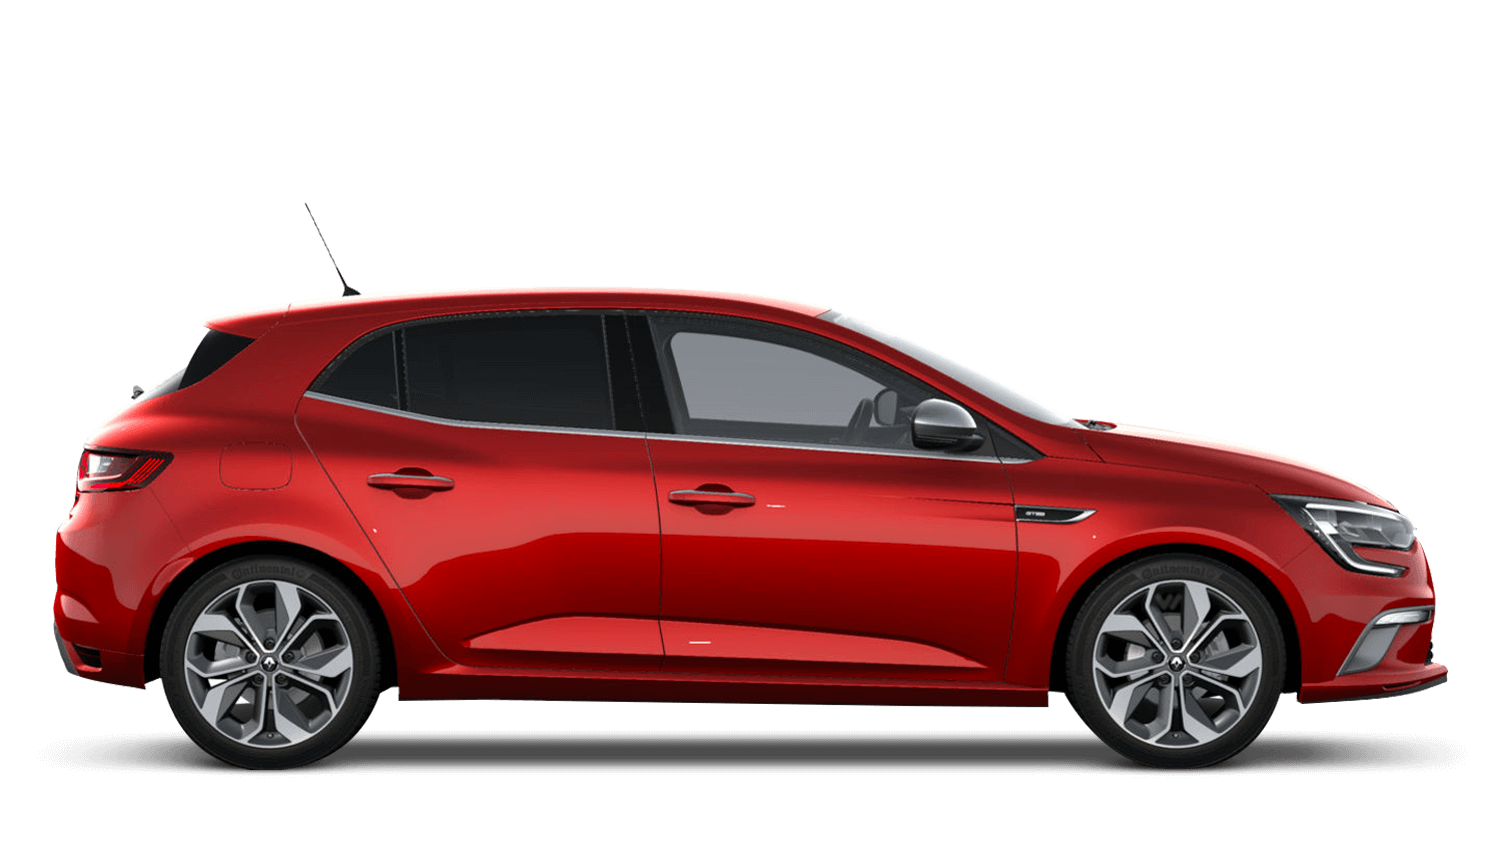 Flame Red New Renault MEGANE